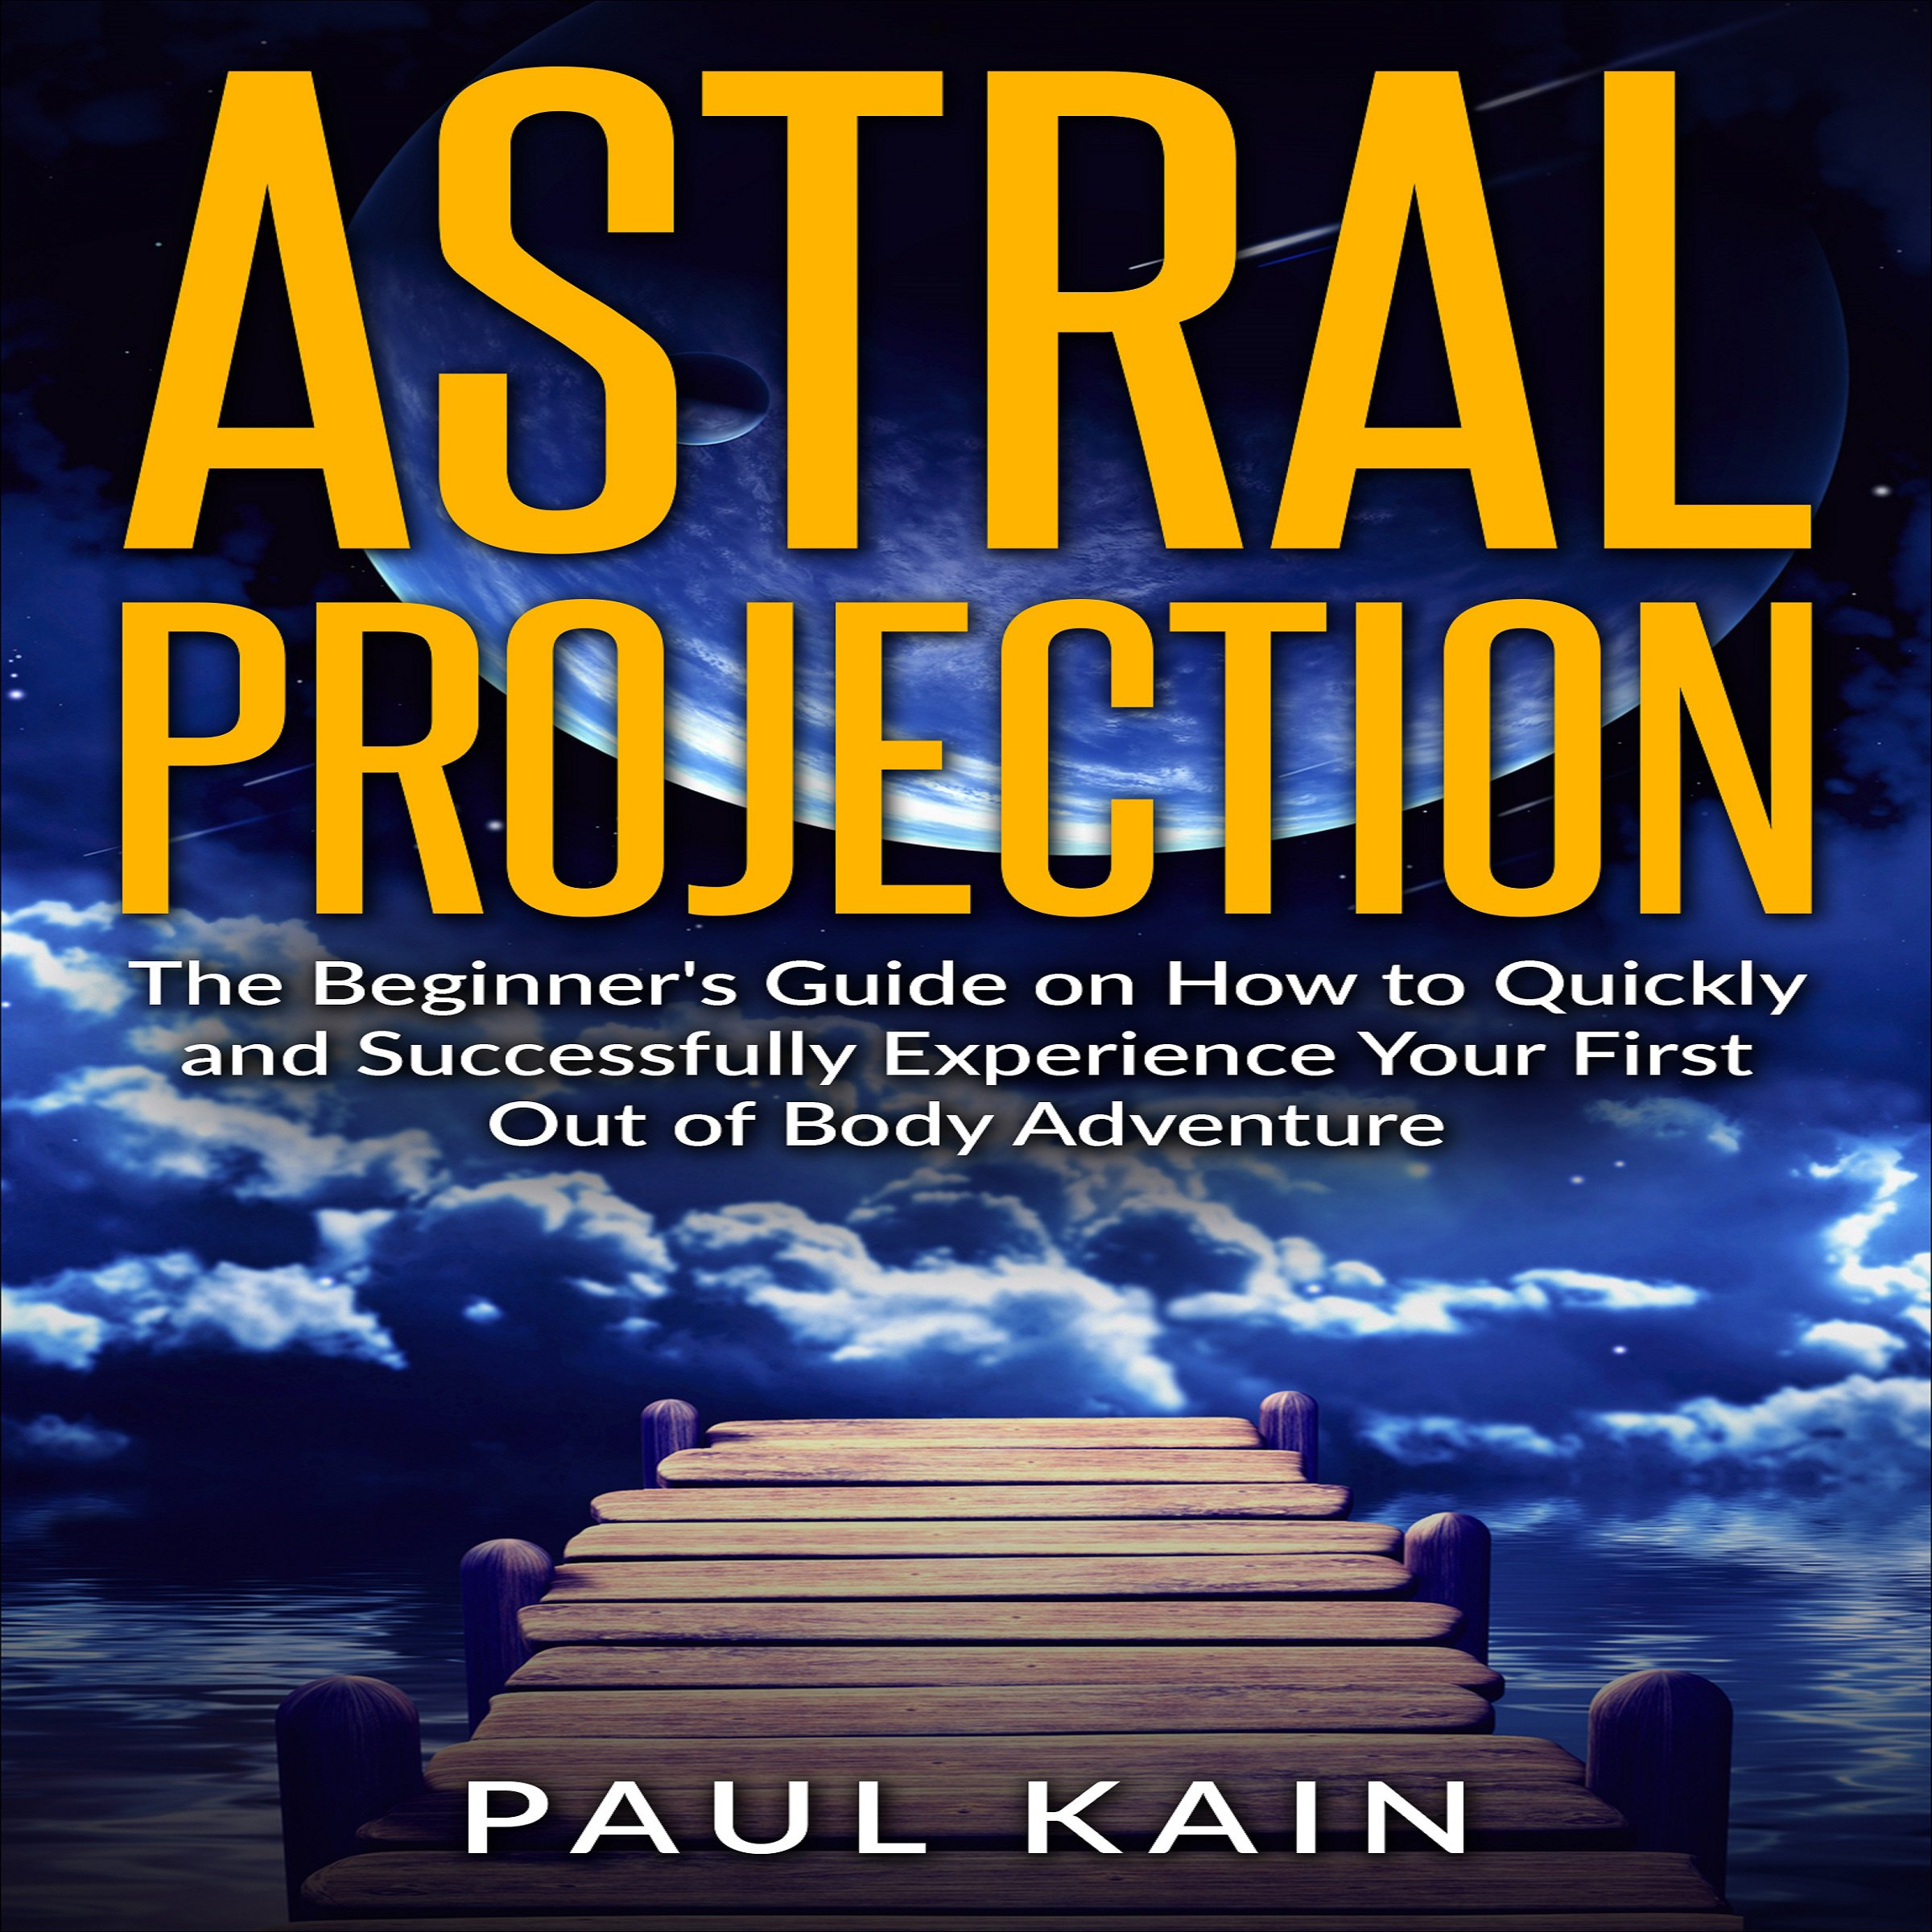 Astral Projection  The Beginner's Guide On How To Quickly And Successfully Experience Your First Out Of Body Adventure